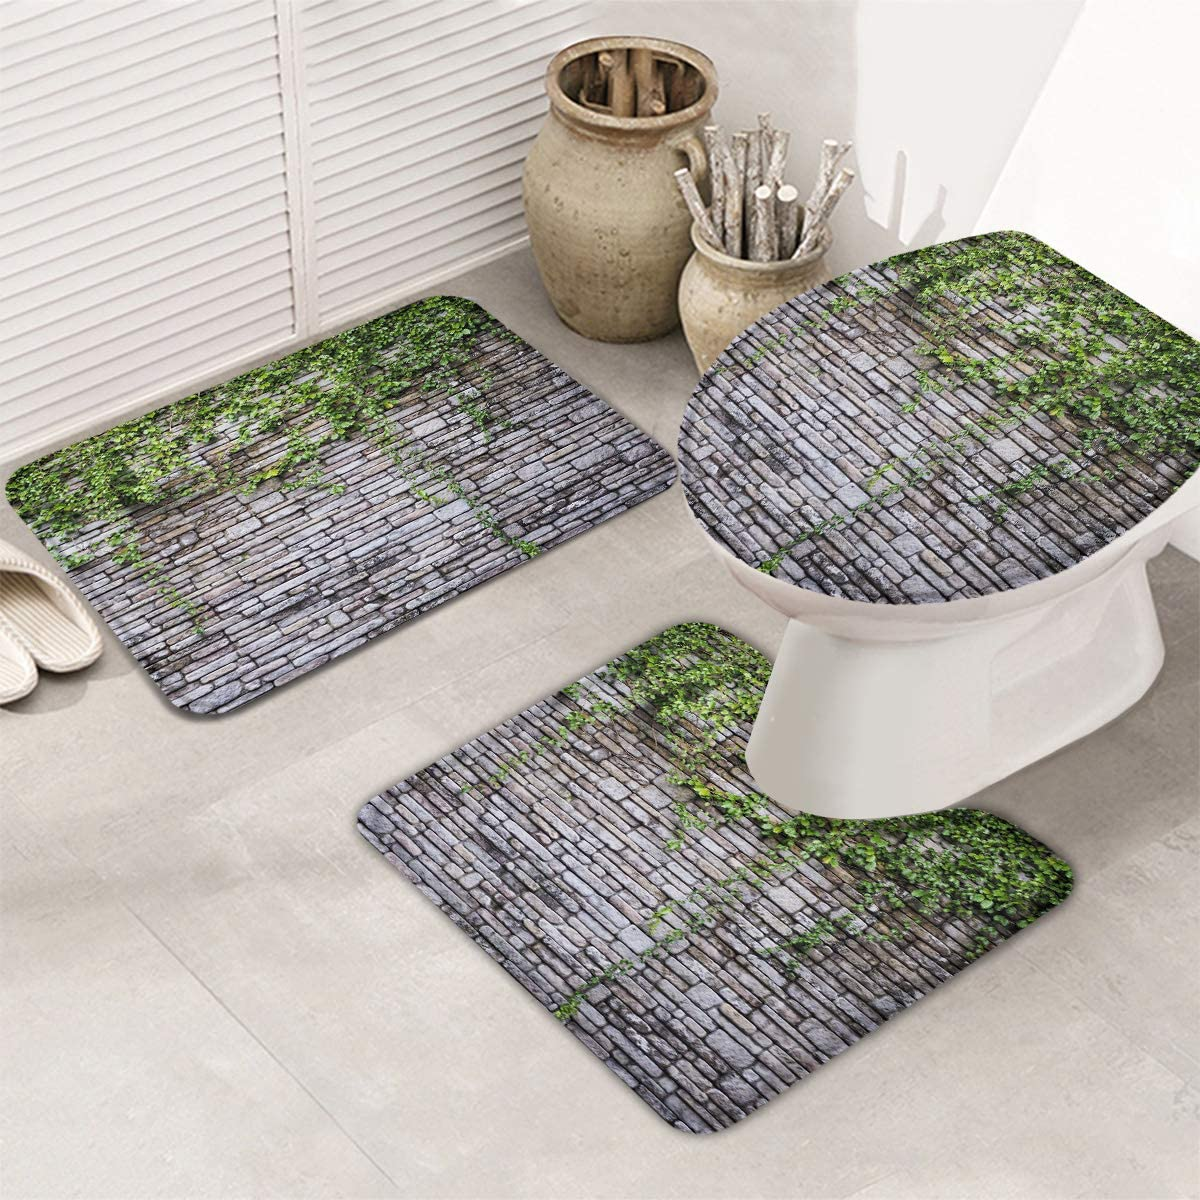 Fangship 3 Piece Bathroom Rugs Set Non Free shipping anywhere in the nation Mats Sl for Bath Credence